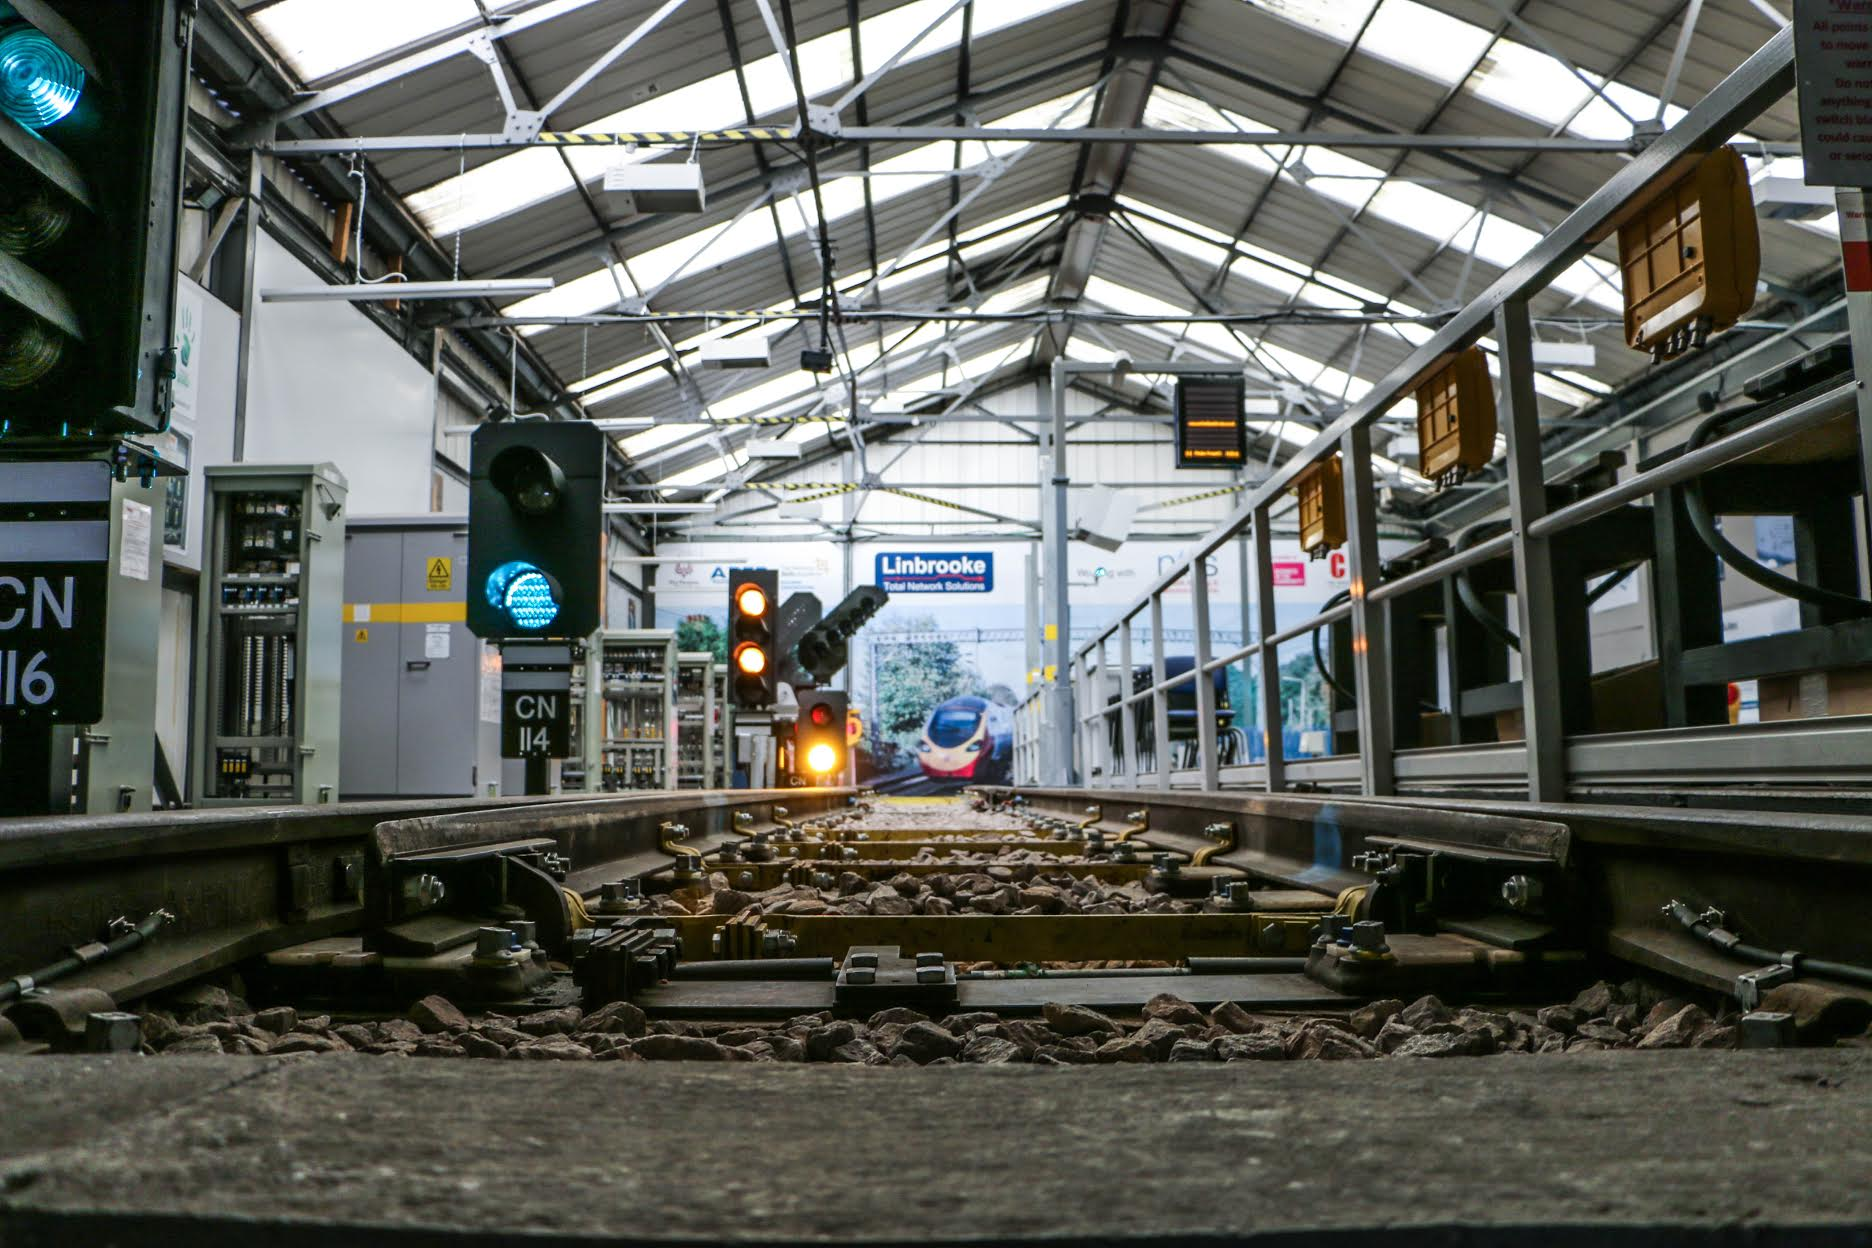 Hands-on Railway Experience at NTRS